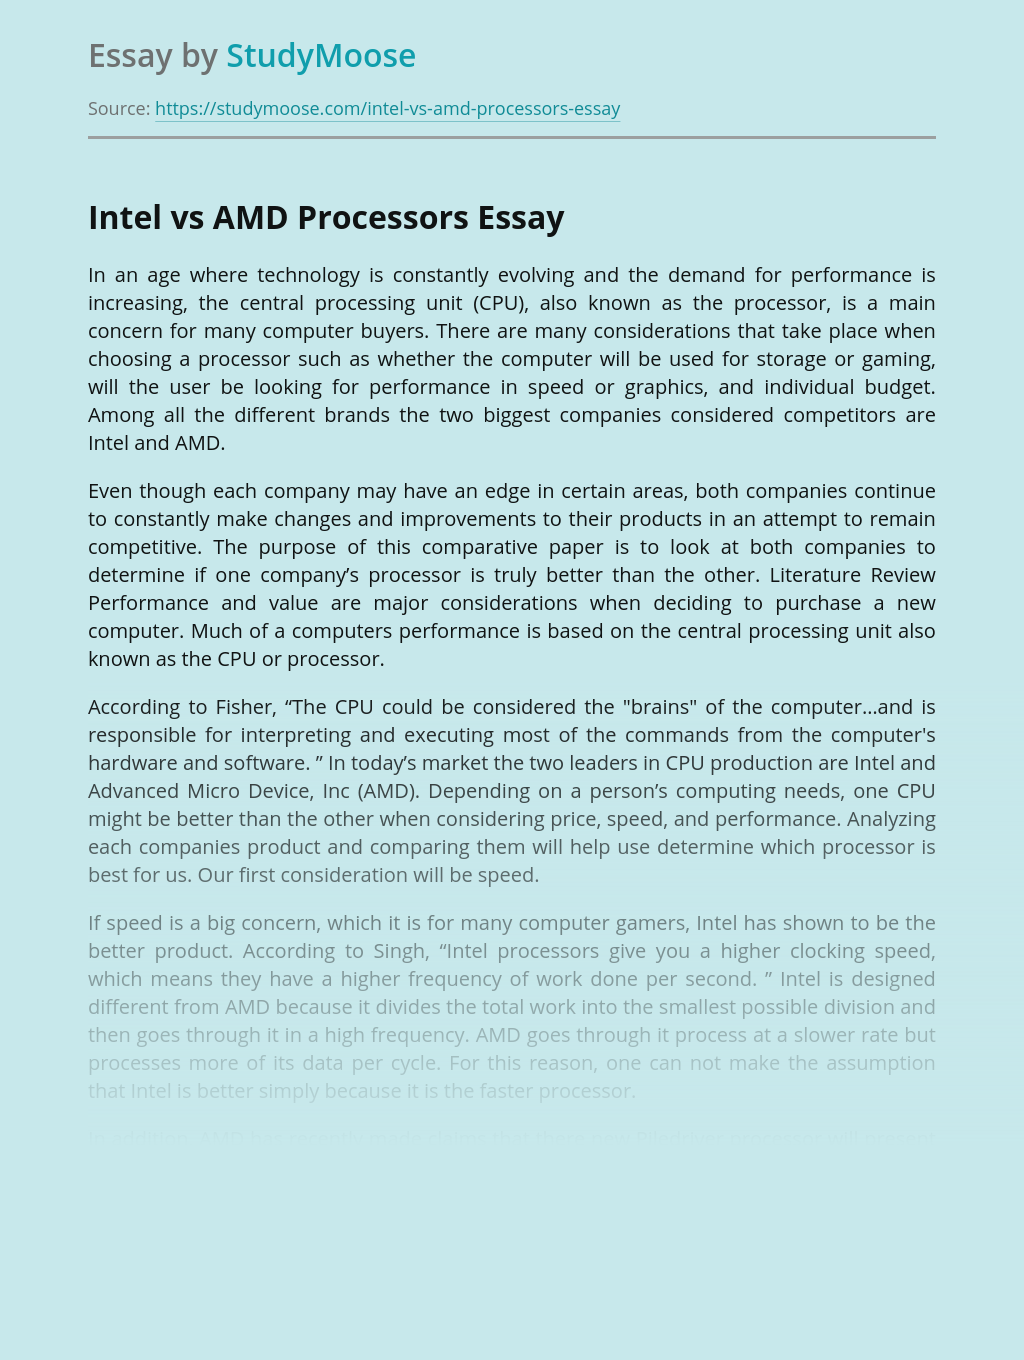 Intel vs AMD for Personal Computer